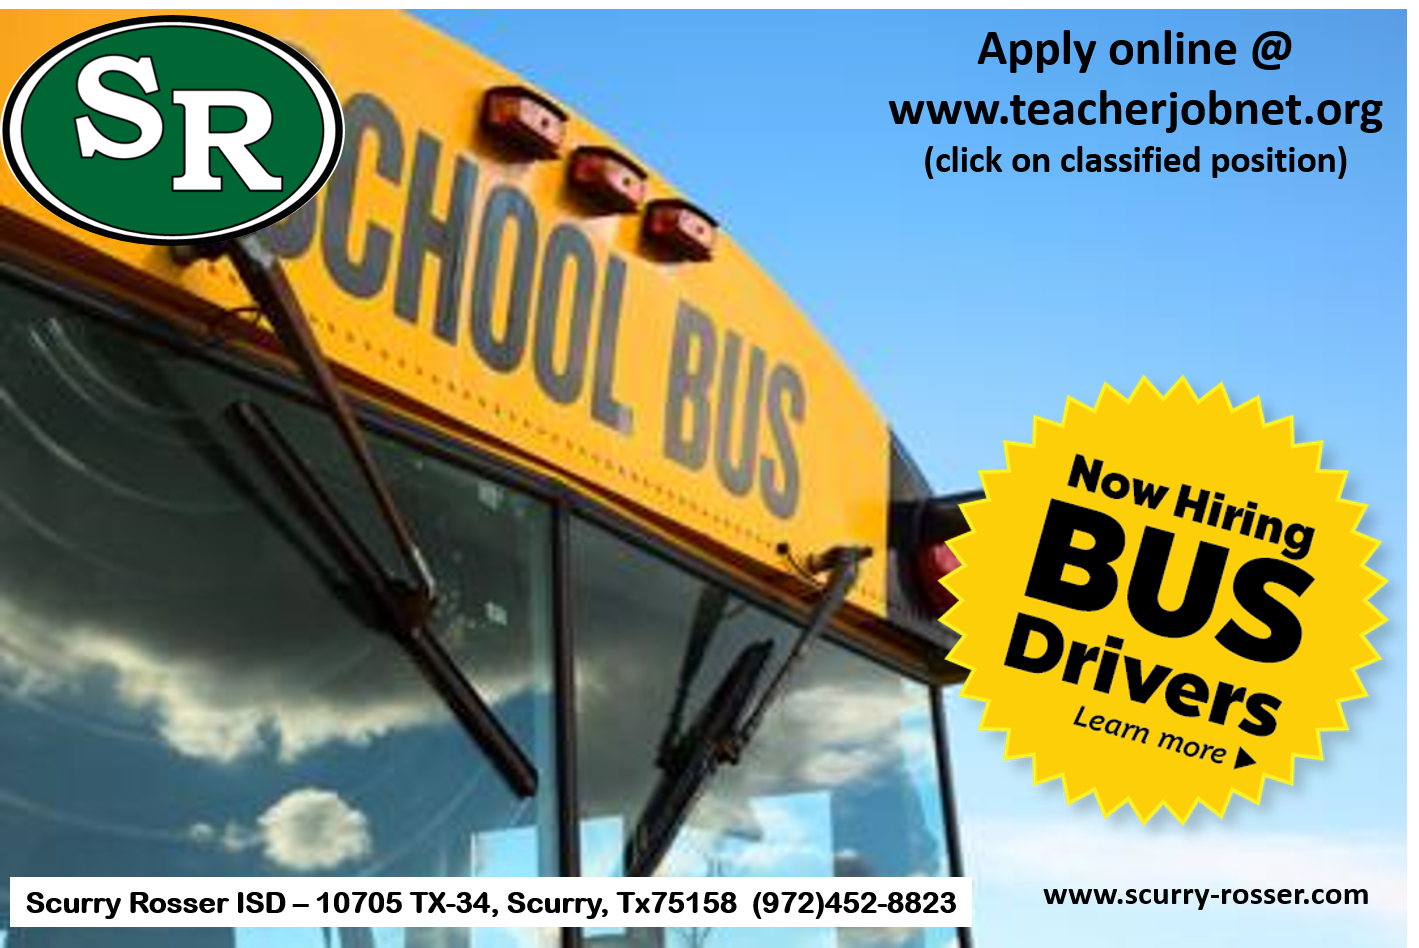 Now Hiring - Bus Drivers